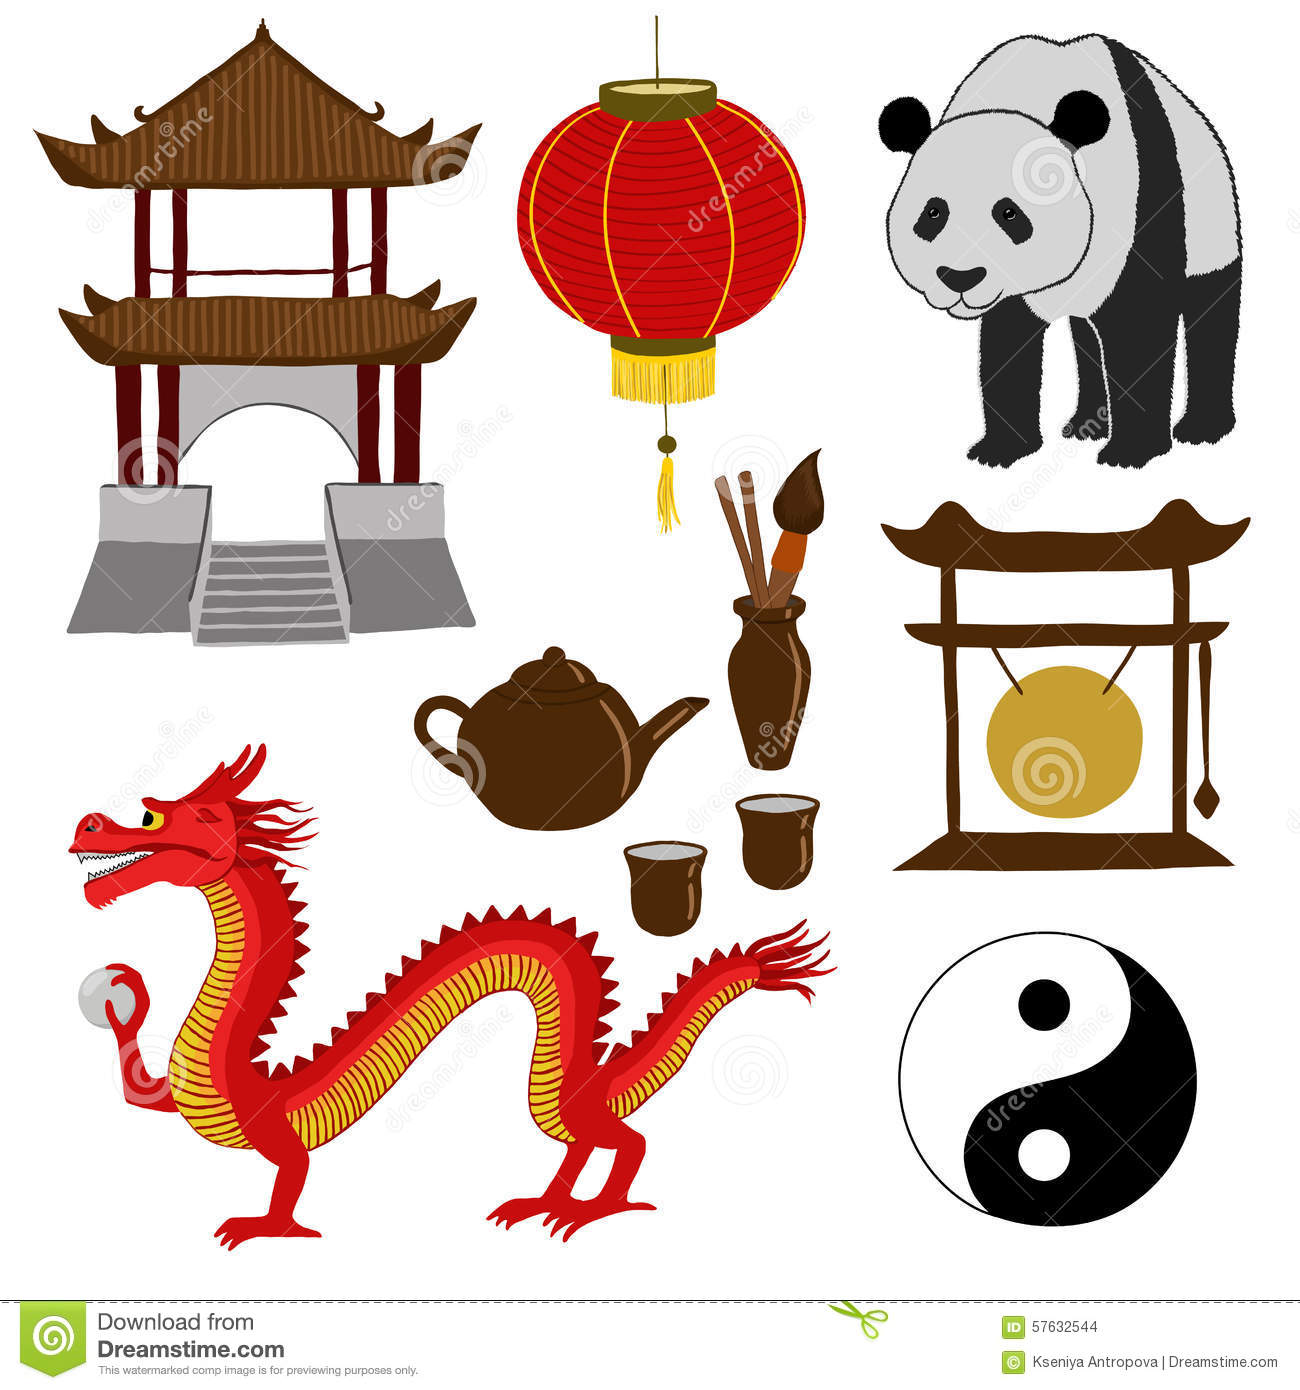 Mulan Worksheet- Ancient Chinese Culture Examples by ... |Chinese Artifacts Examples